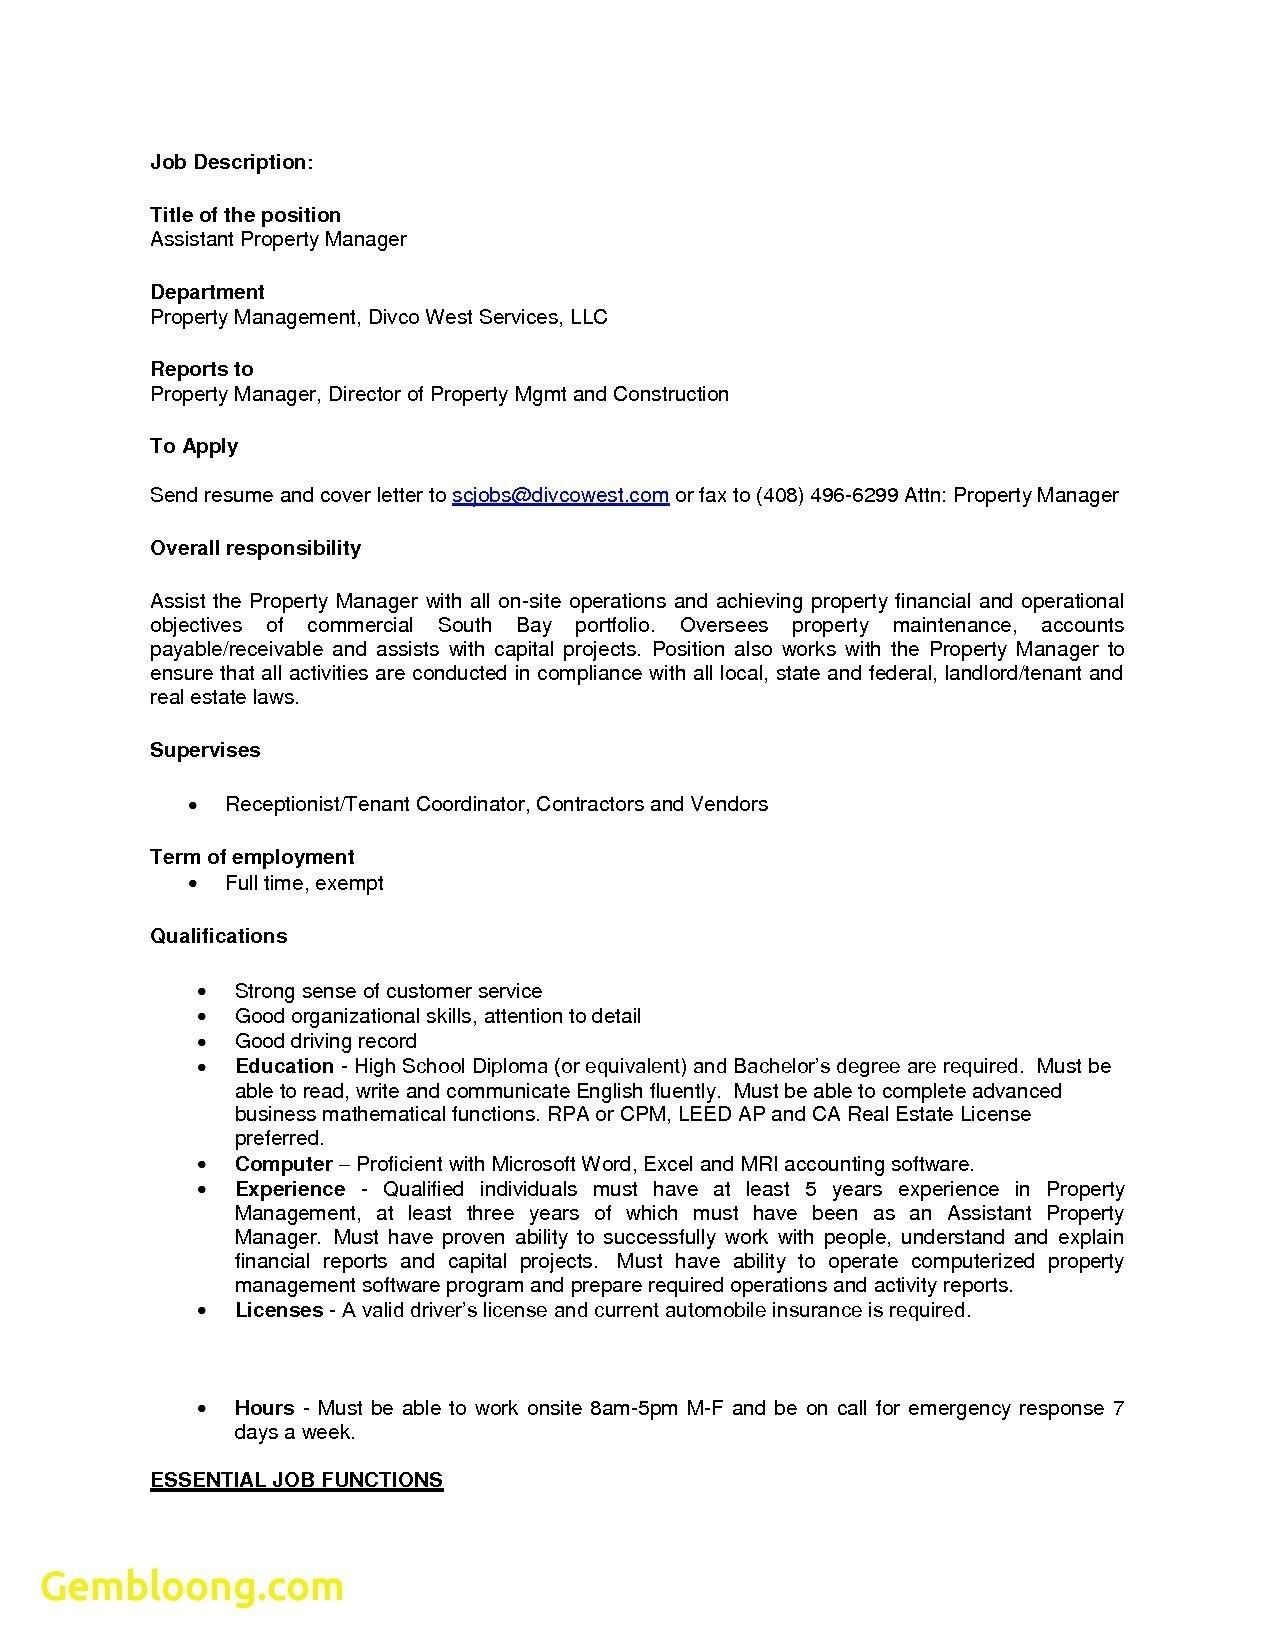 Patient Missed Appointment Letter Template - Proof Residency Letter Template From Landlord Fresh New